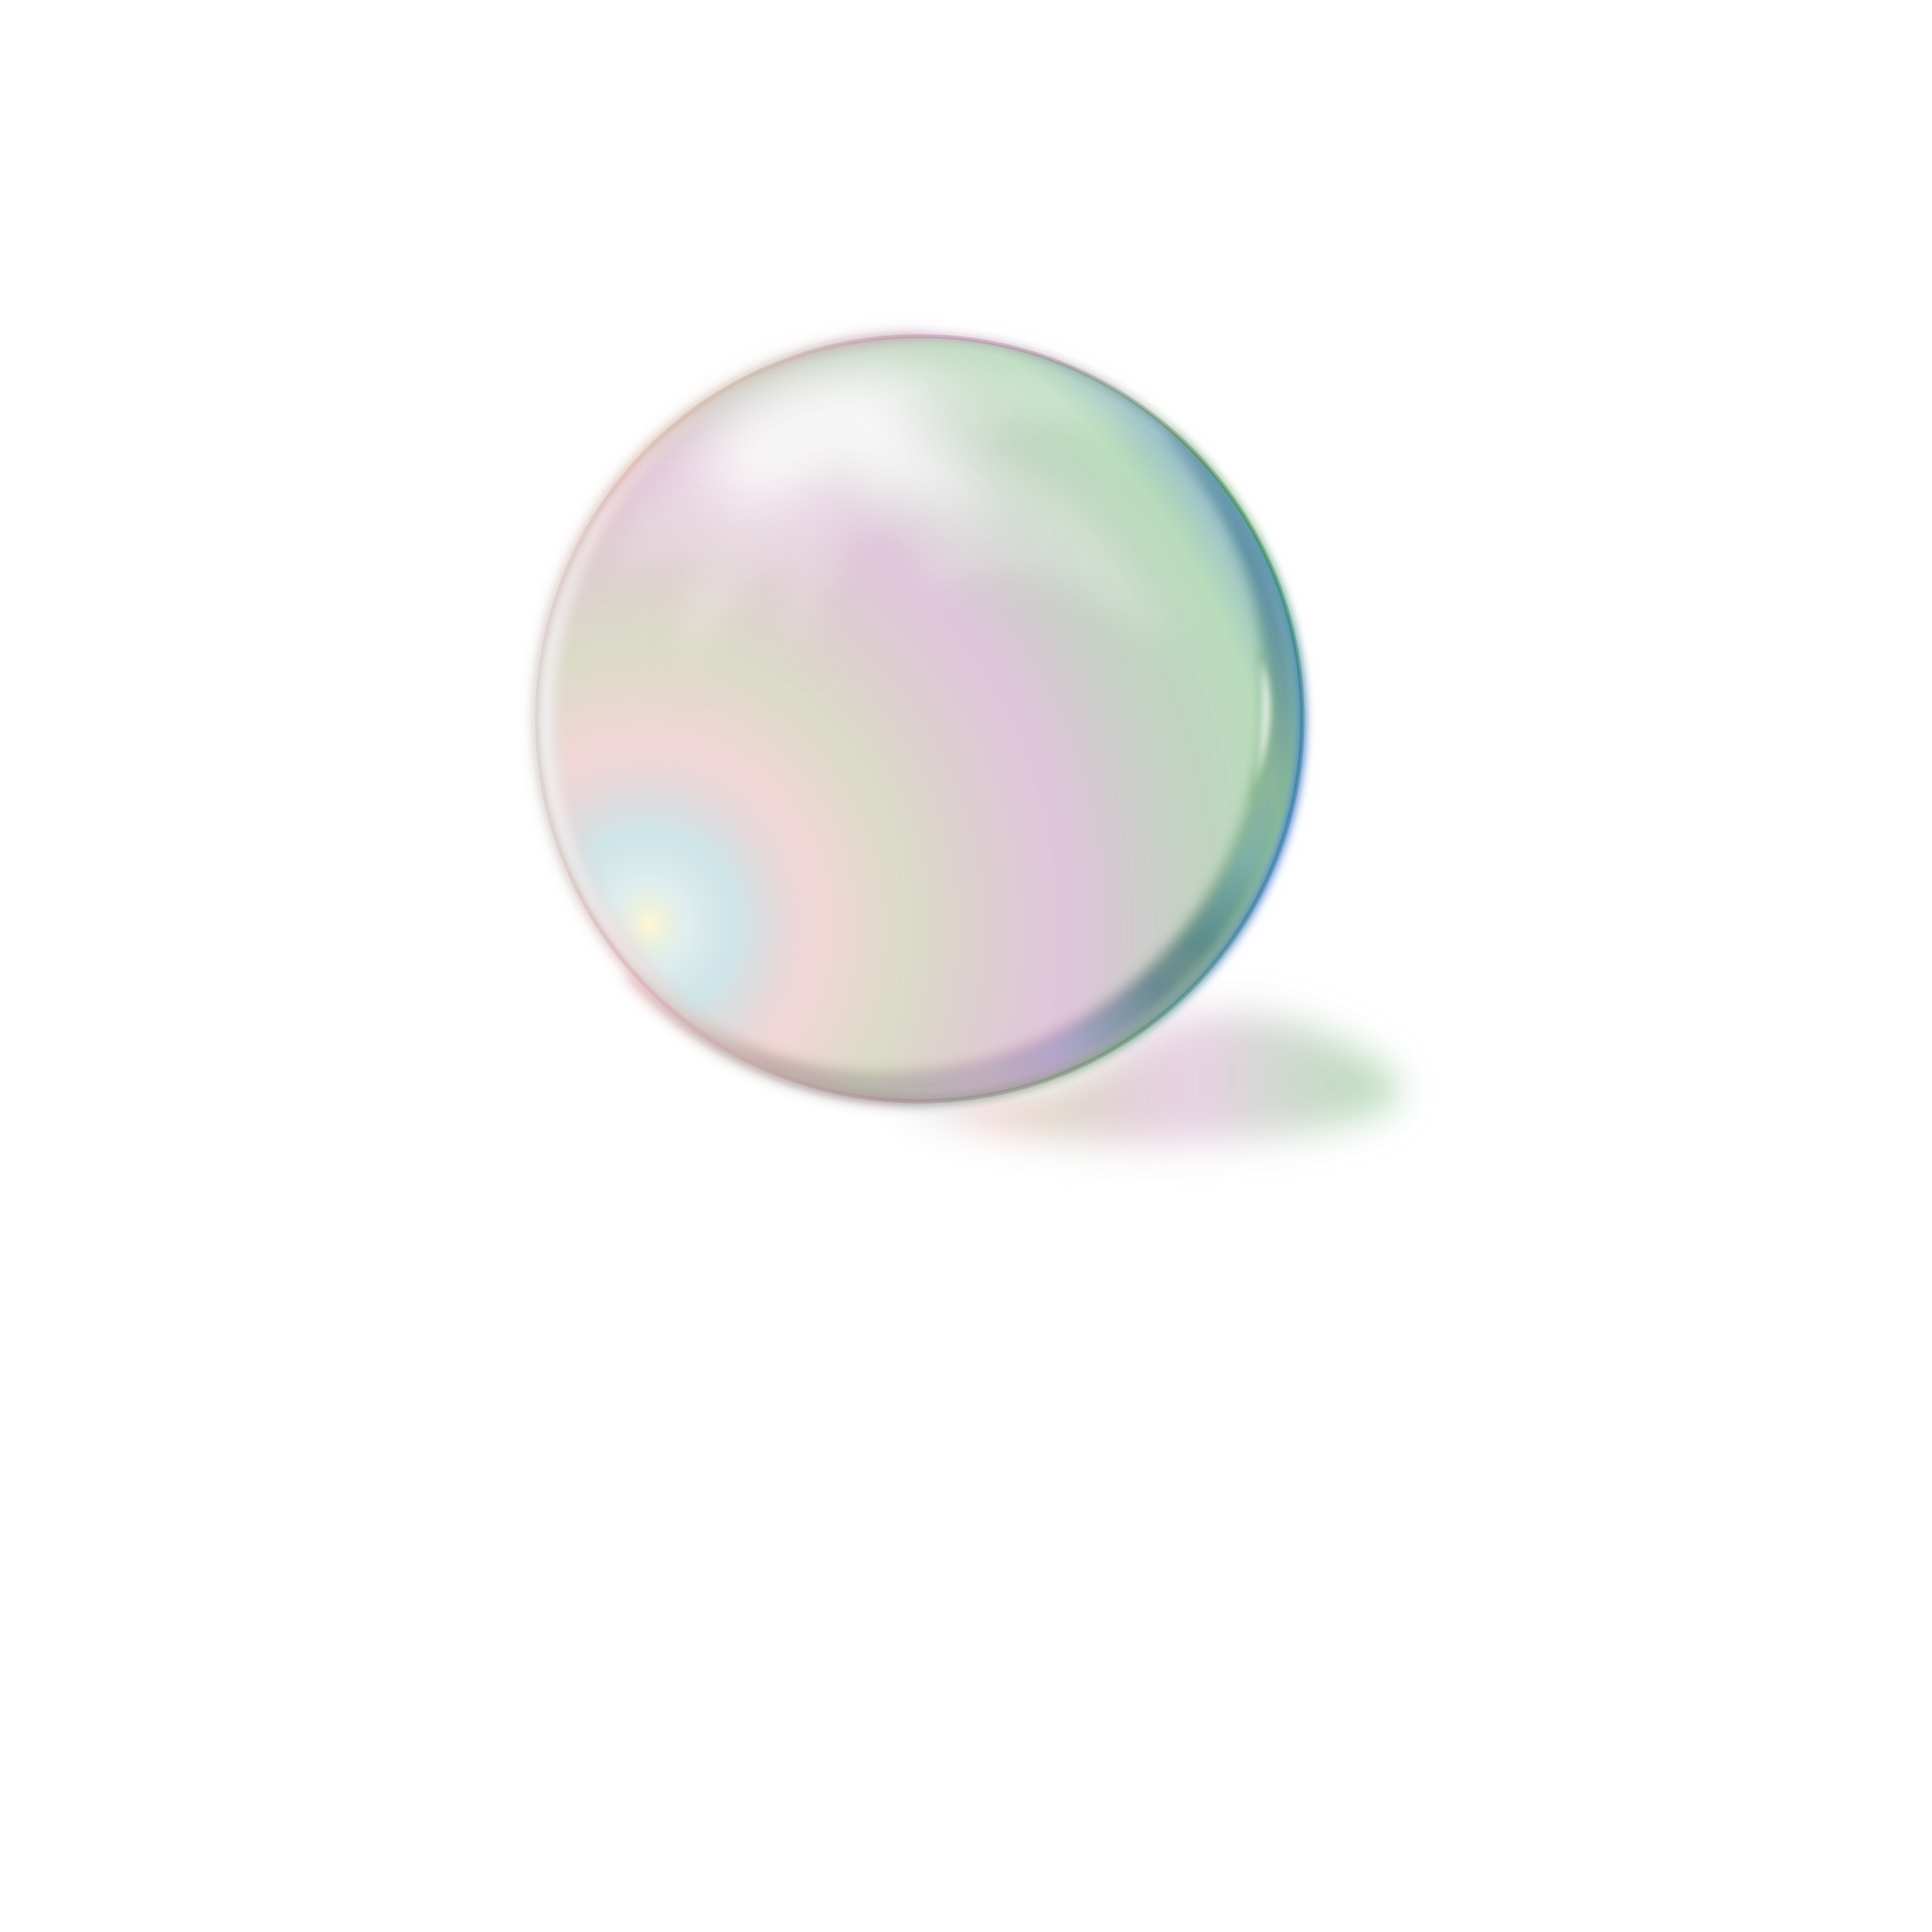 Bubble Ball by Ana.